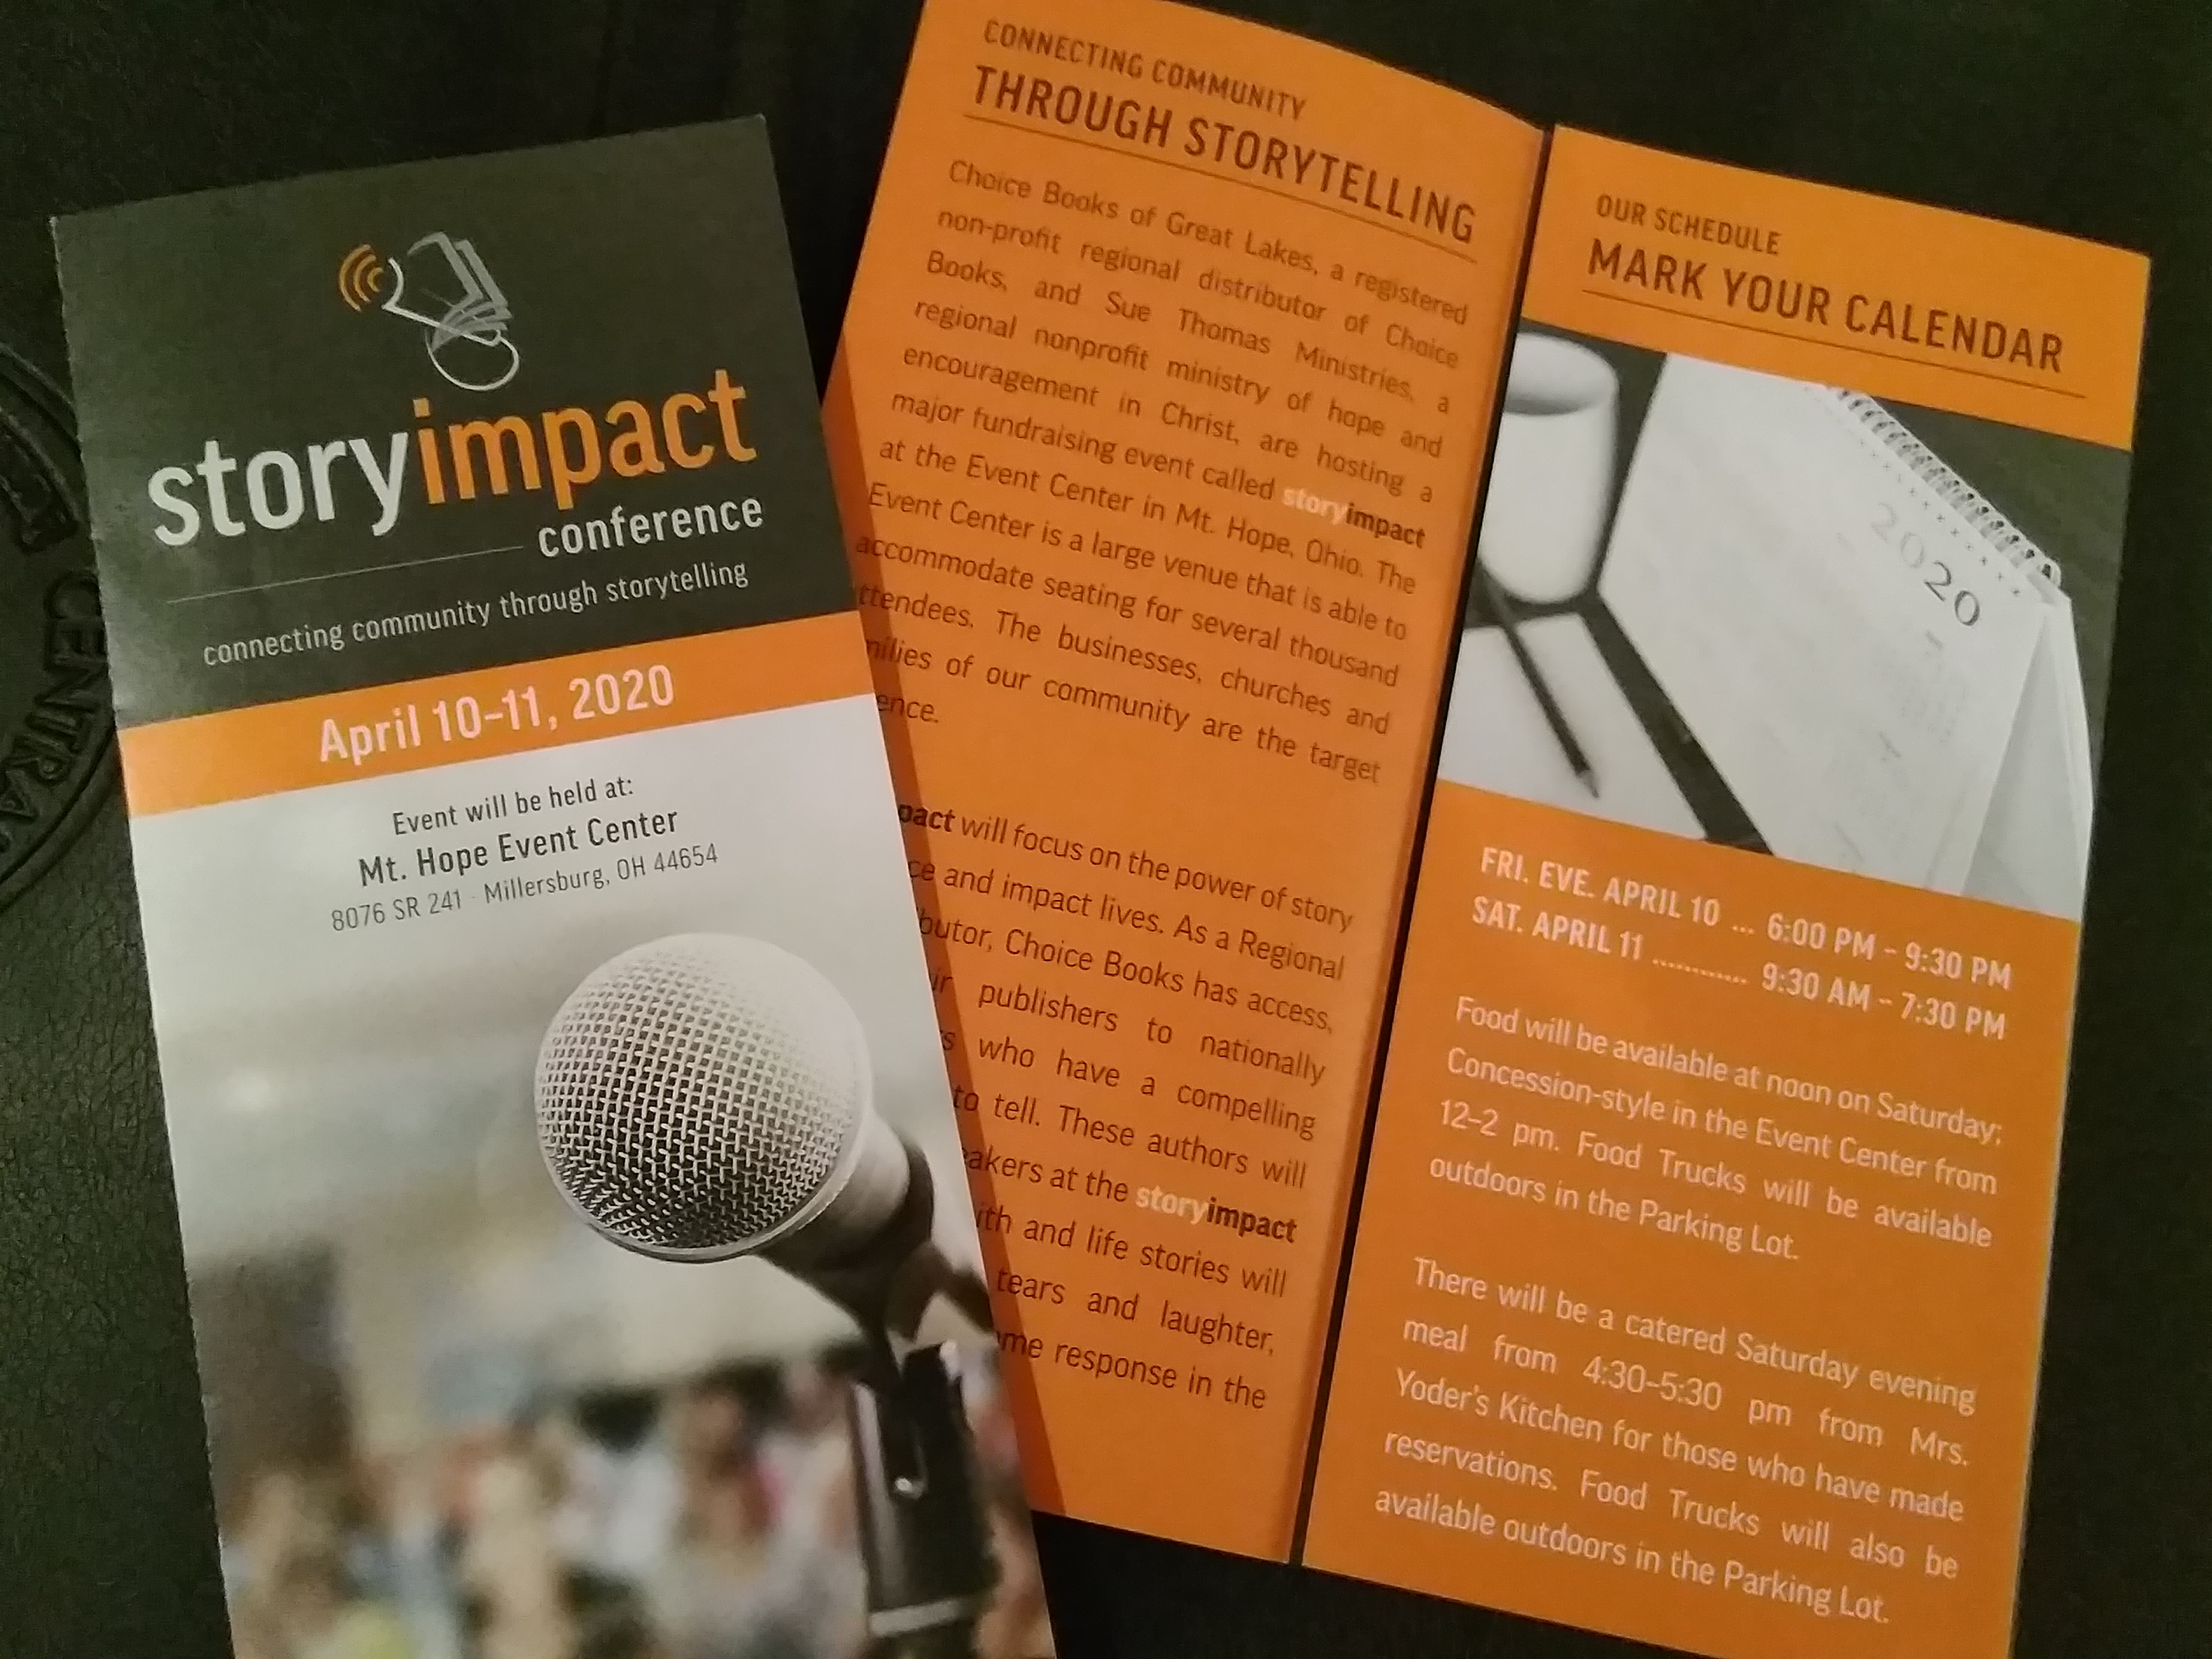 StoryImpact Conference April 10-11